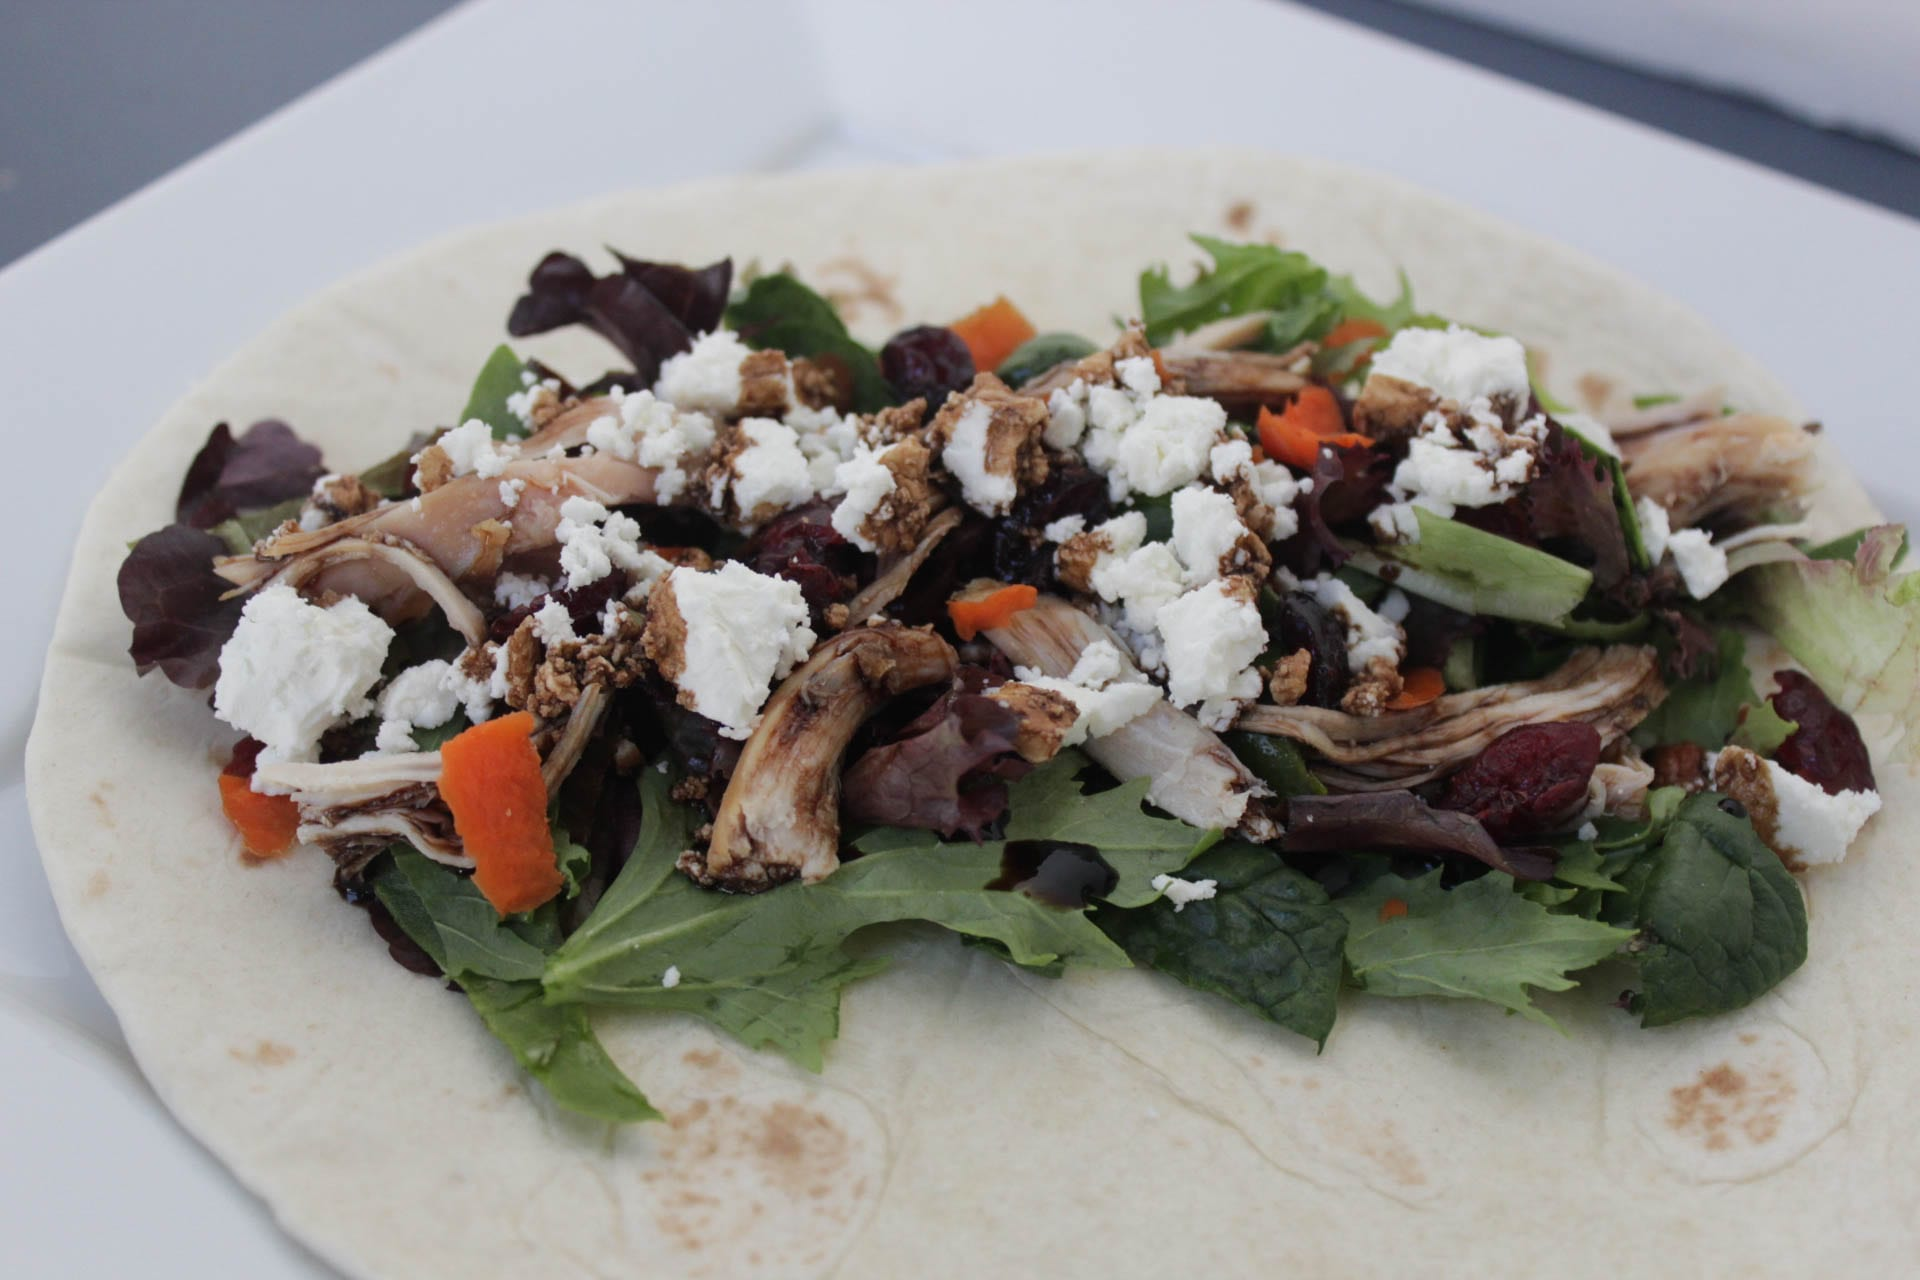 Chicken, greens, goat cheese on tortilla